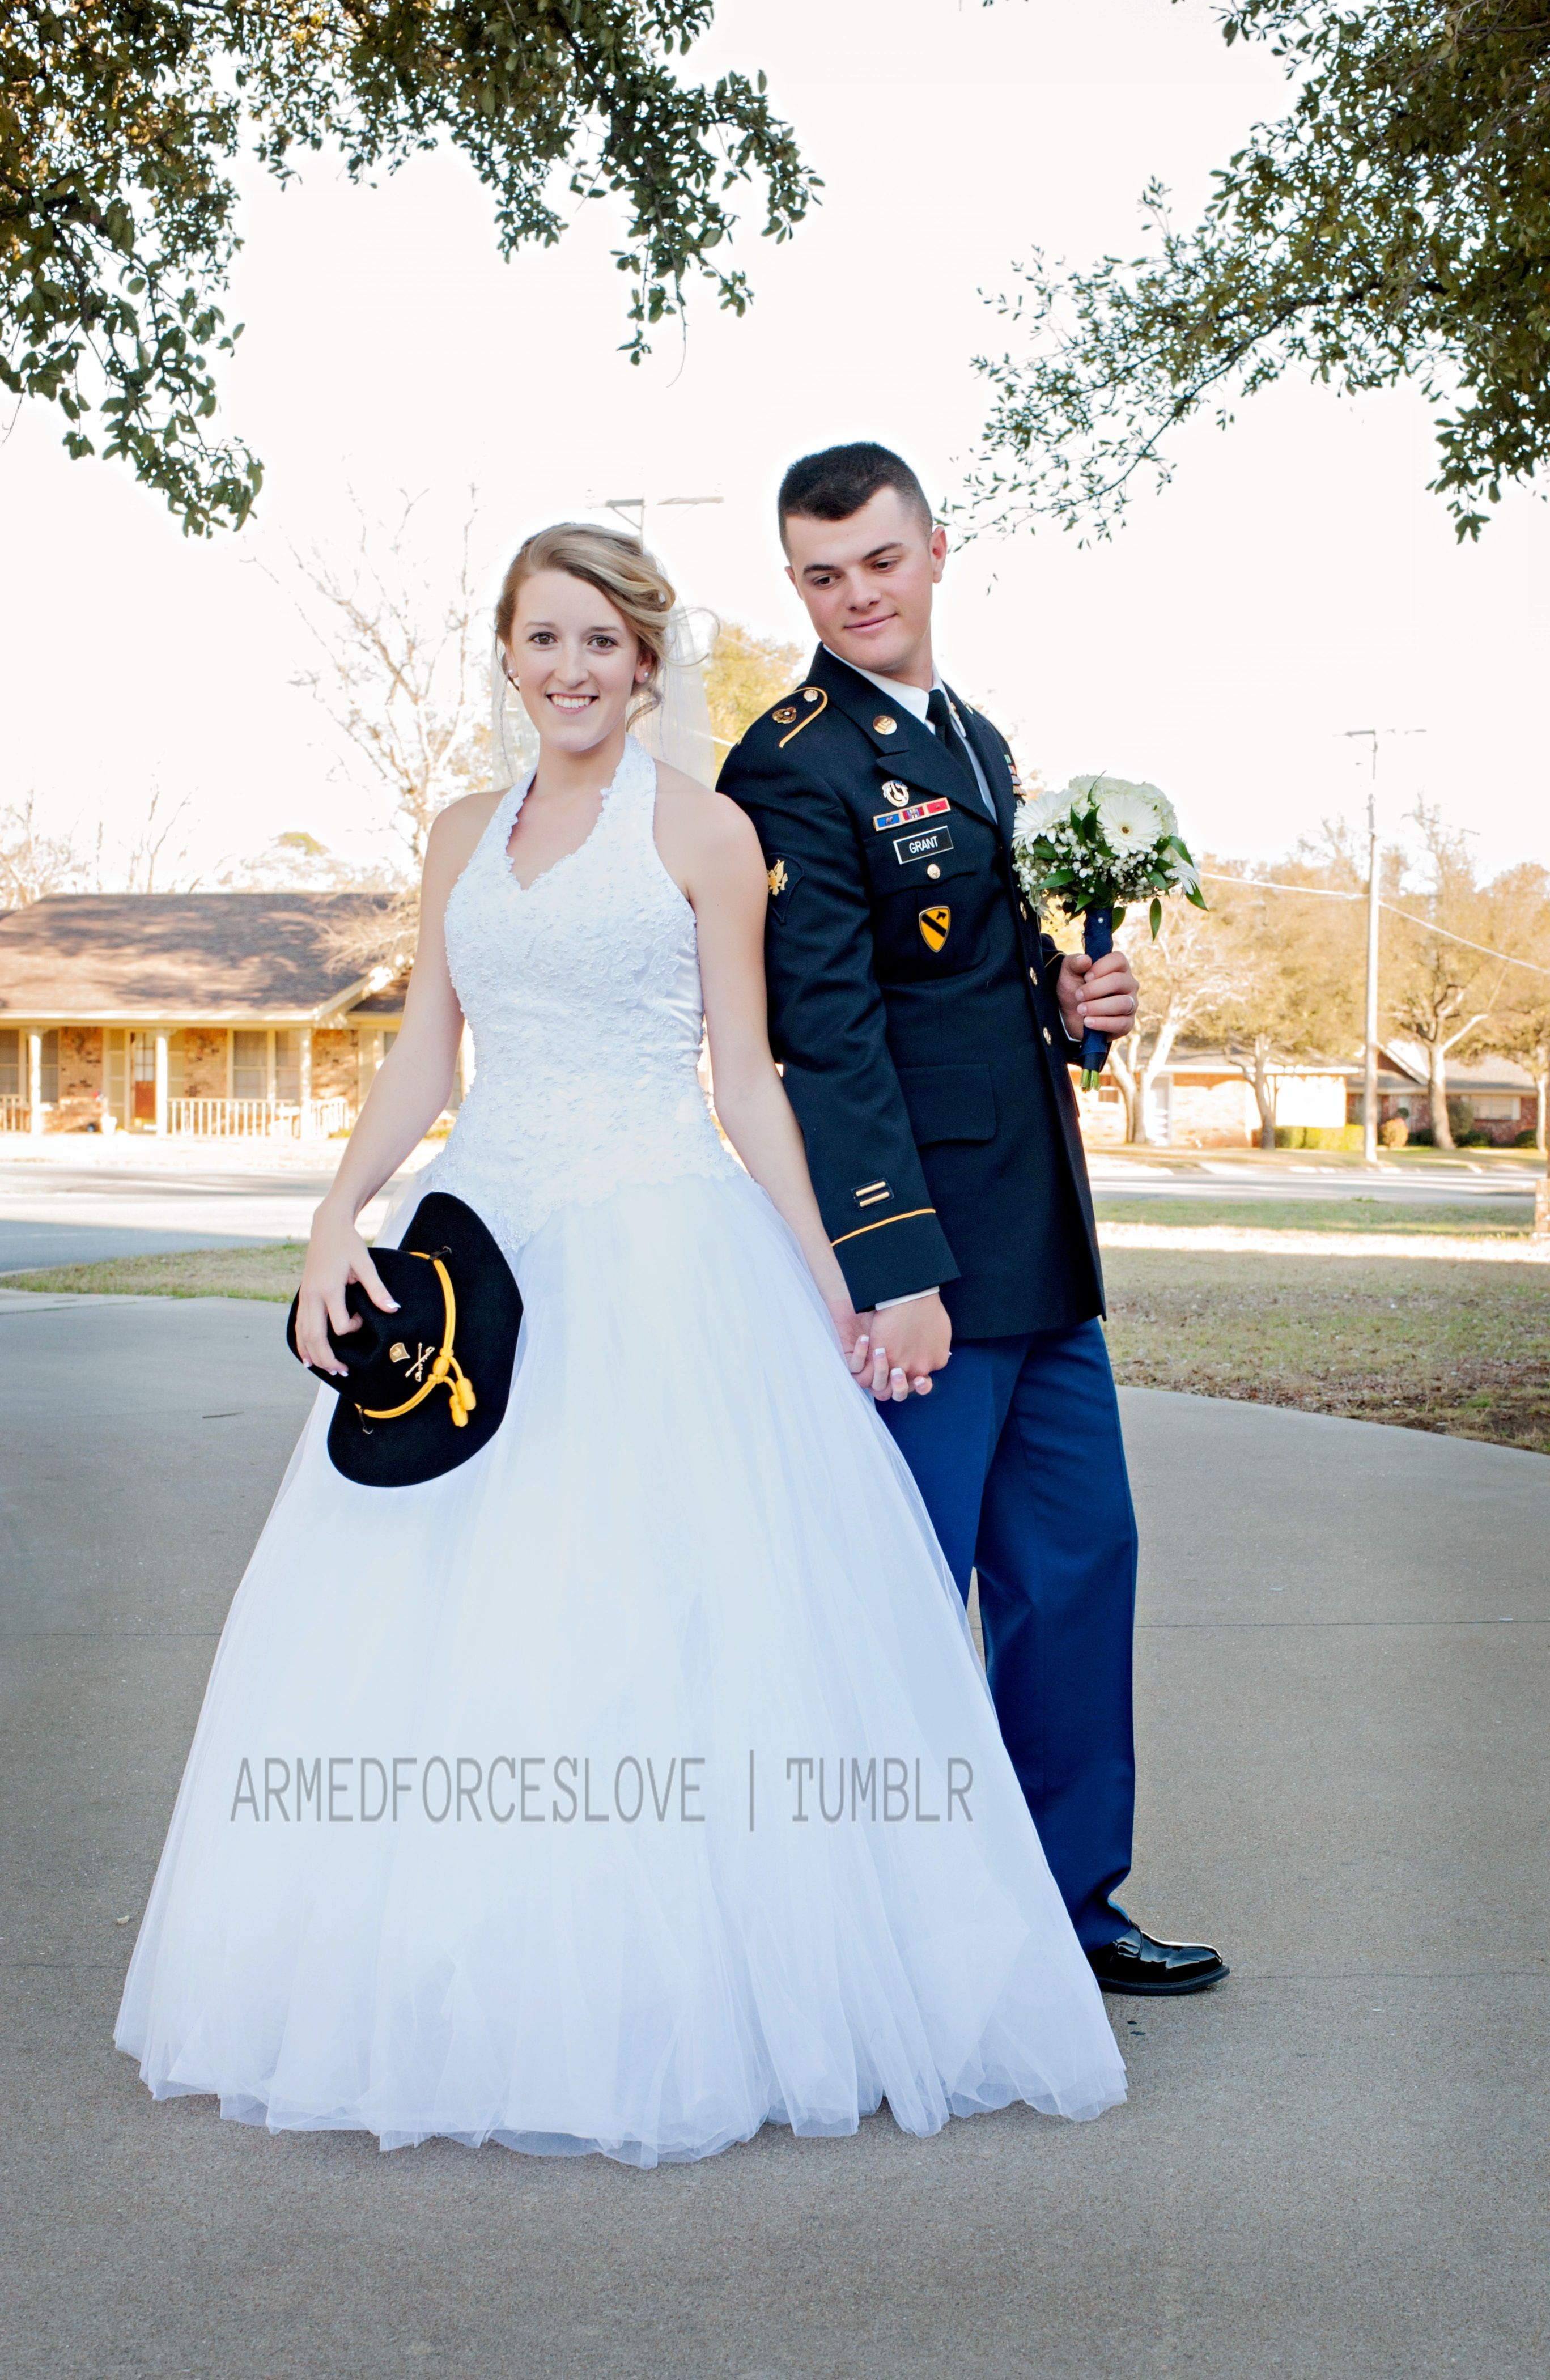 Military Army Wedding My Husband And I After Our Ceremony But Before The Reception Wedding Couples Pose My Wedding Couple Poses Army Wedding Wedding Couples [ 4200 x 2735 Pixel ]